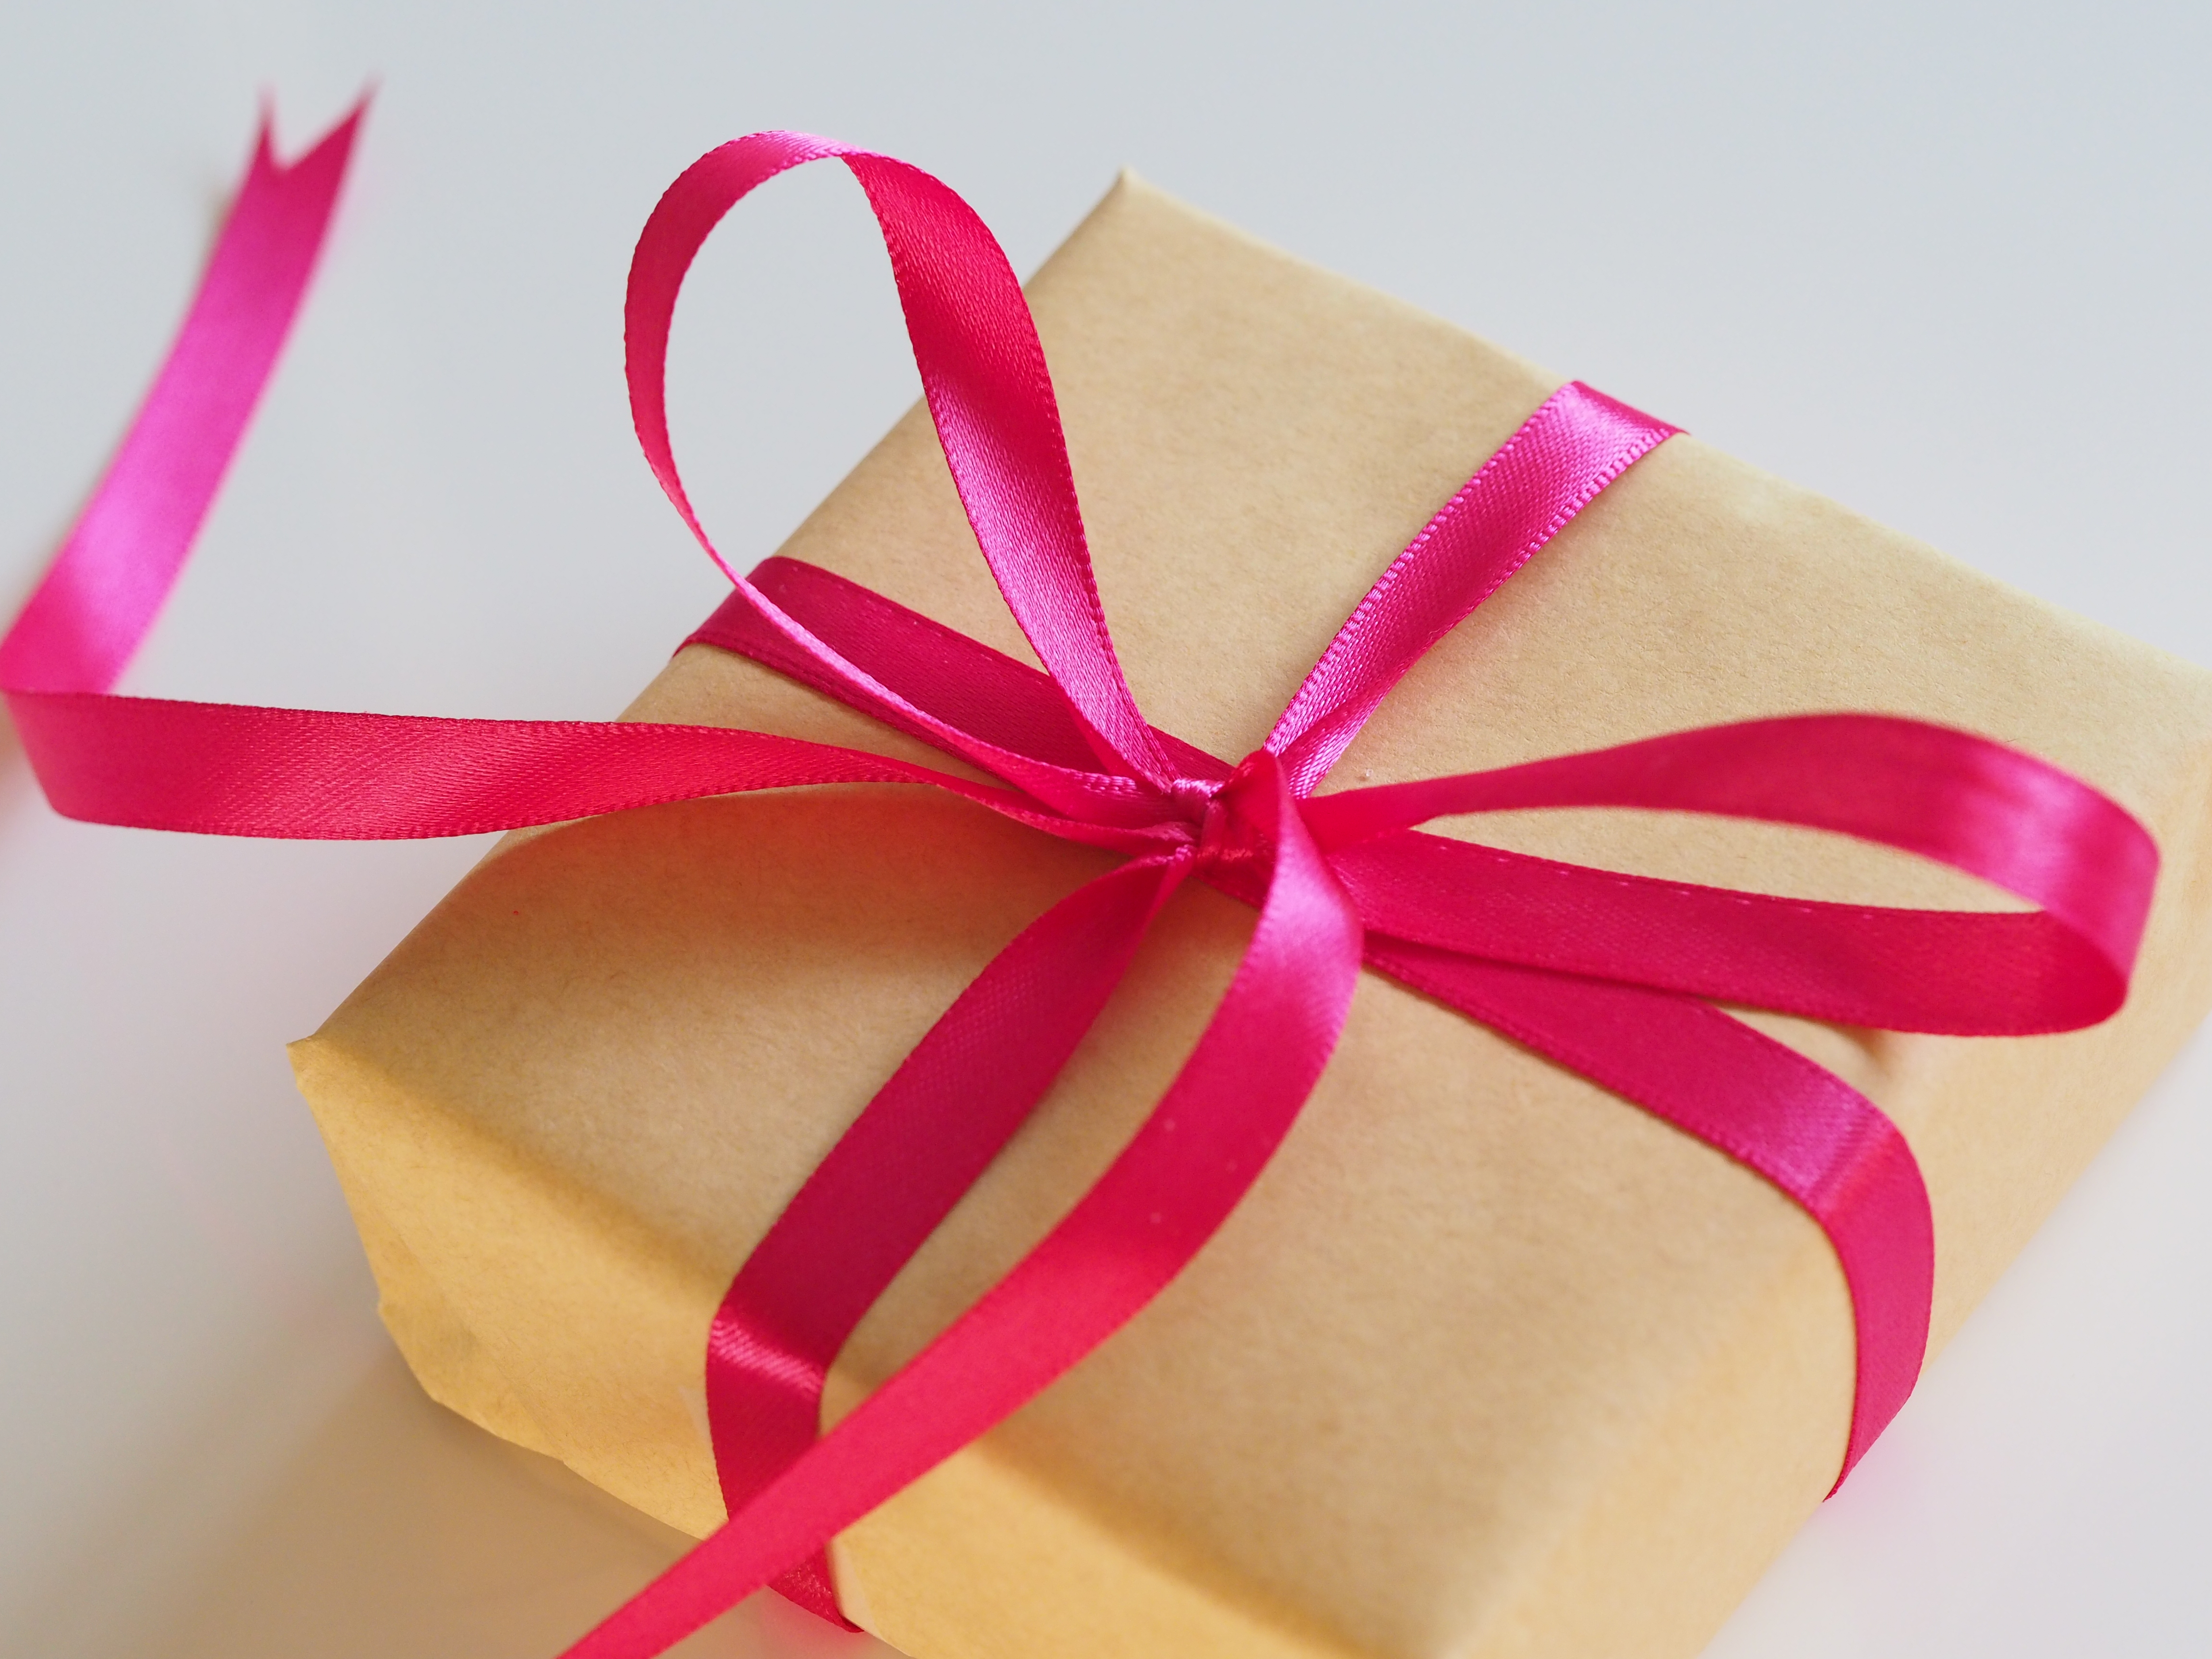 Bitcoin Gifts Becoming Common